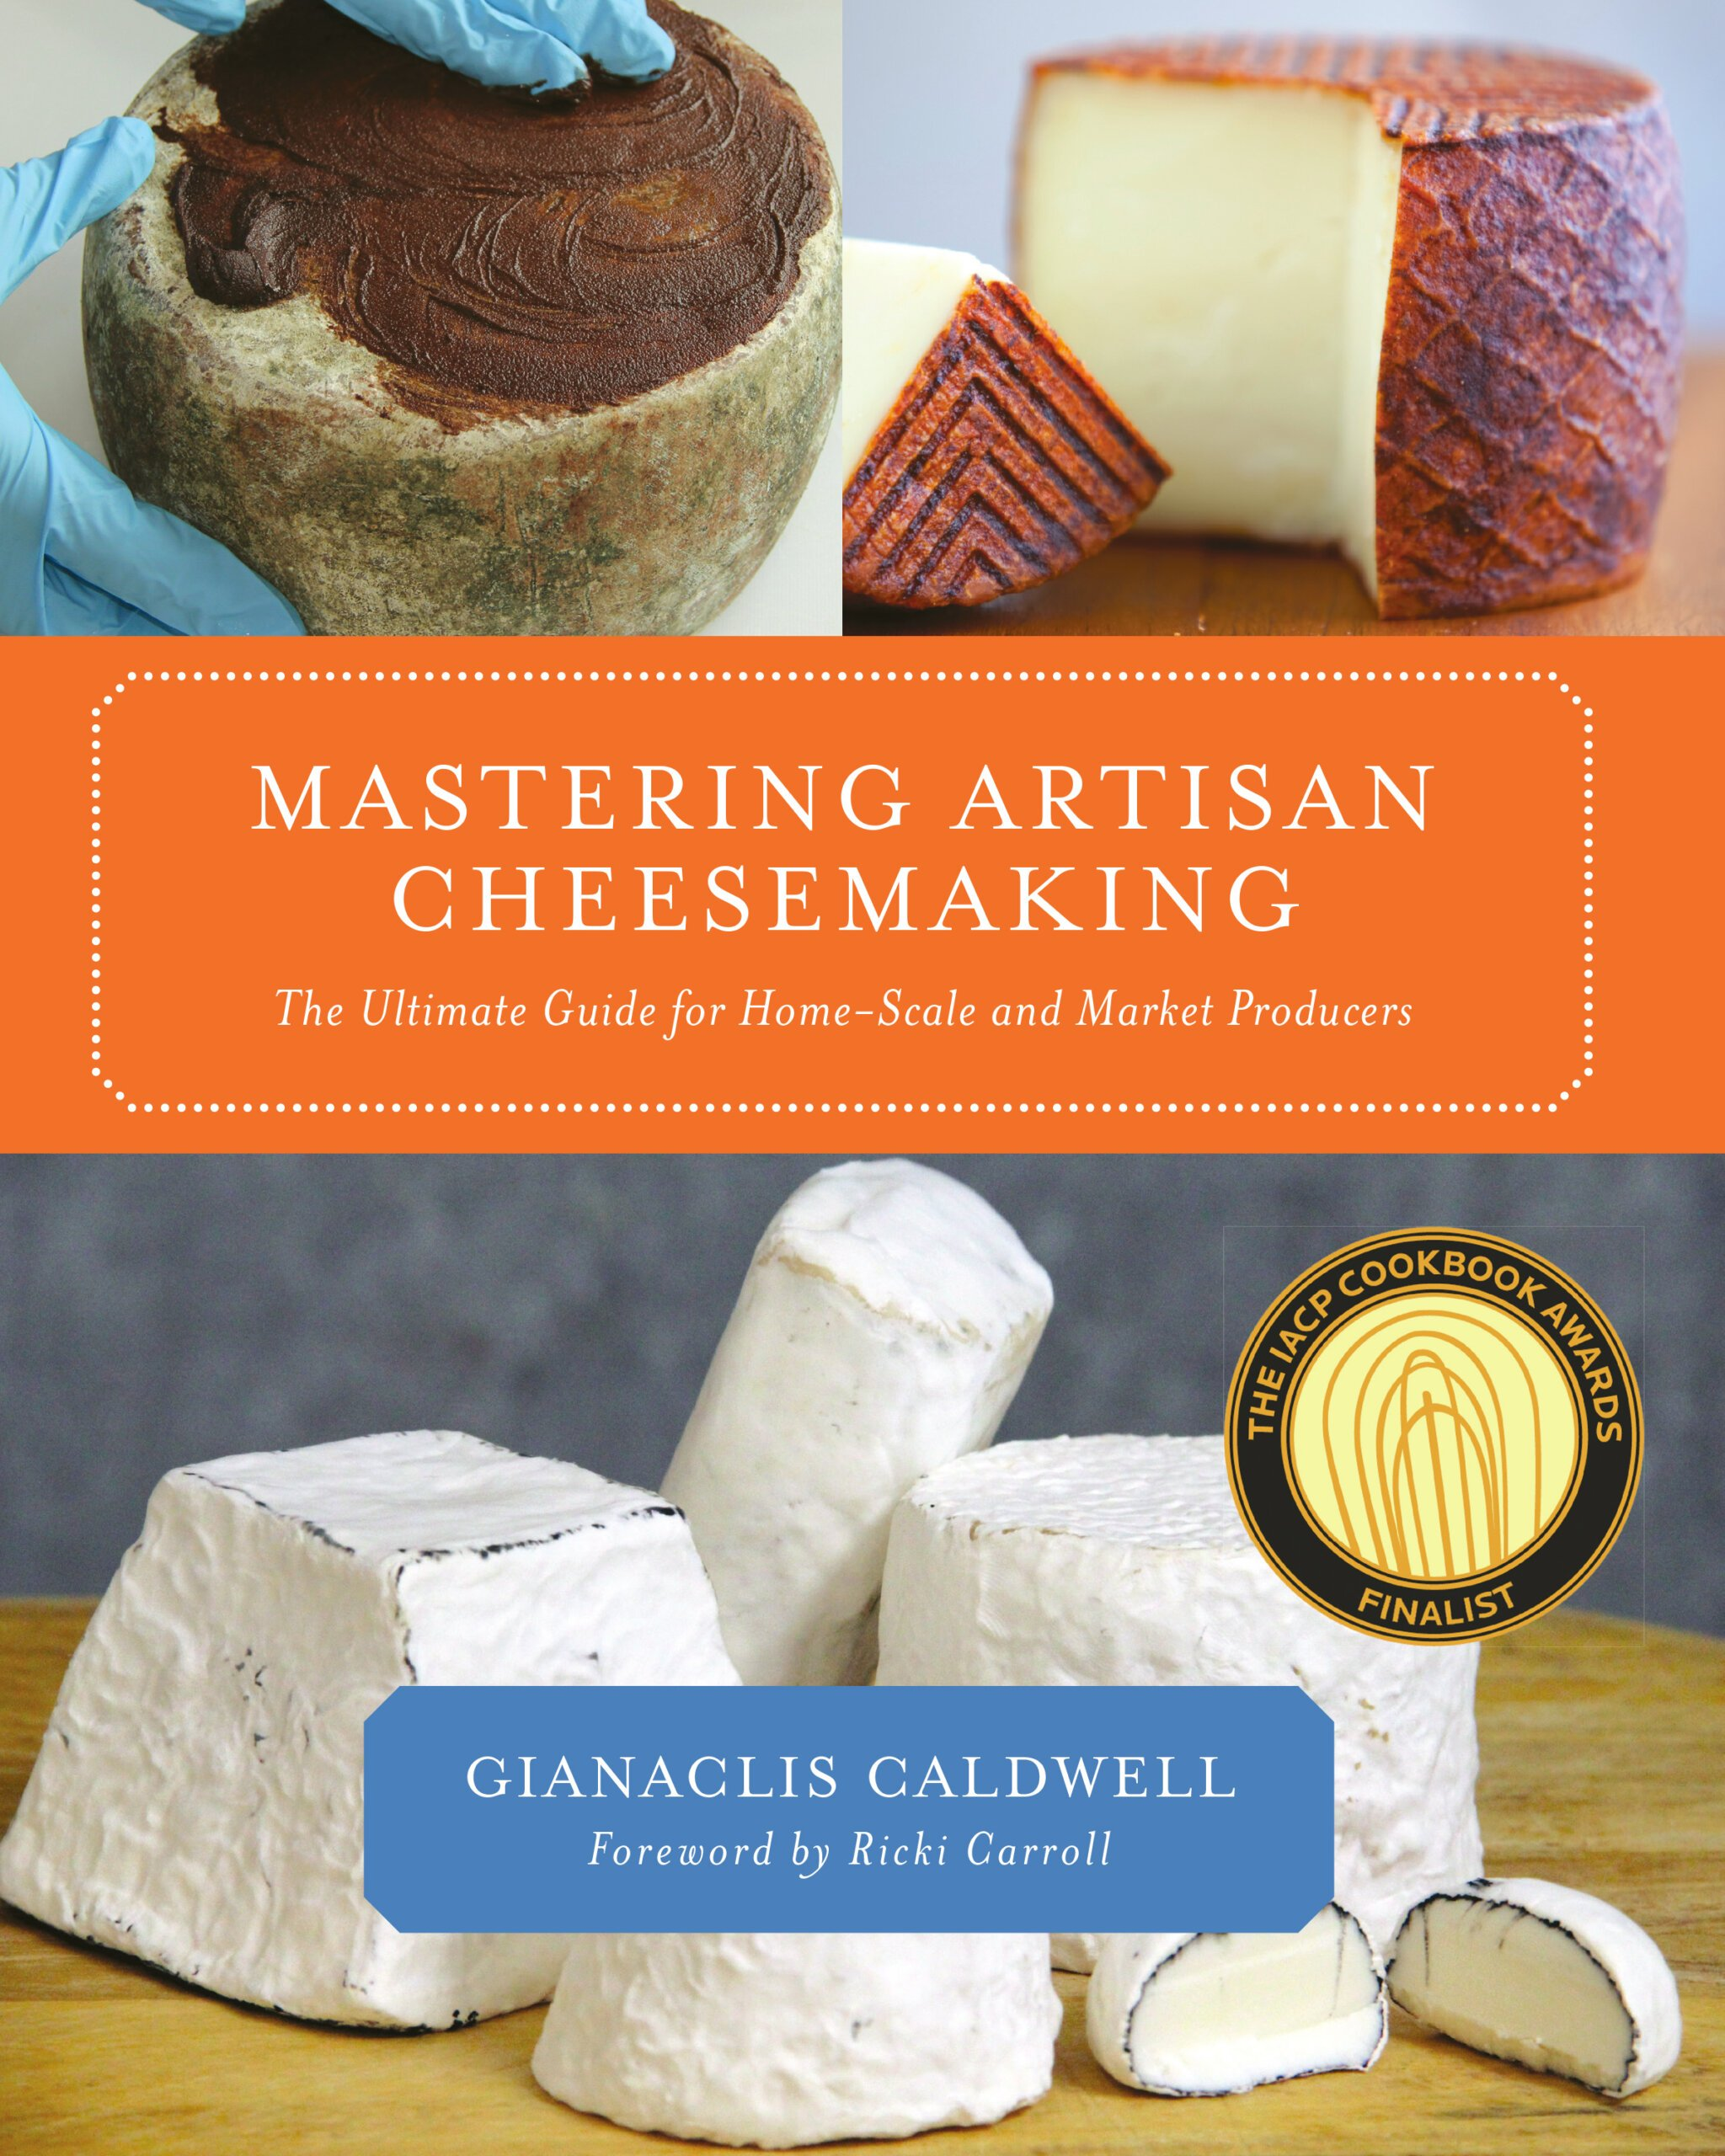 The Mastering Artisan Cheesemaking cover